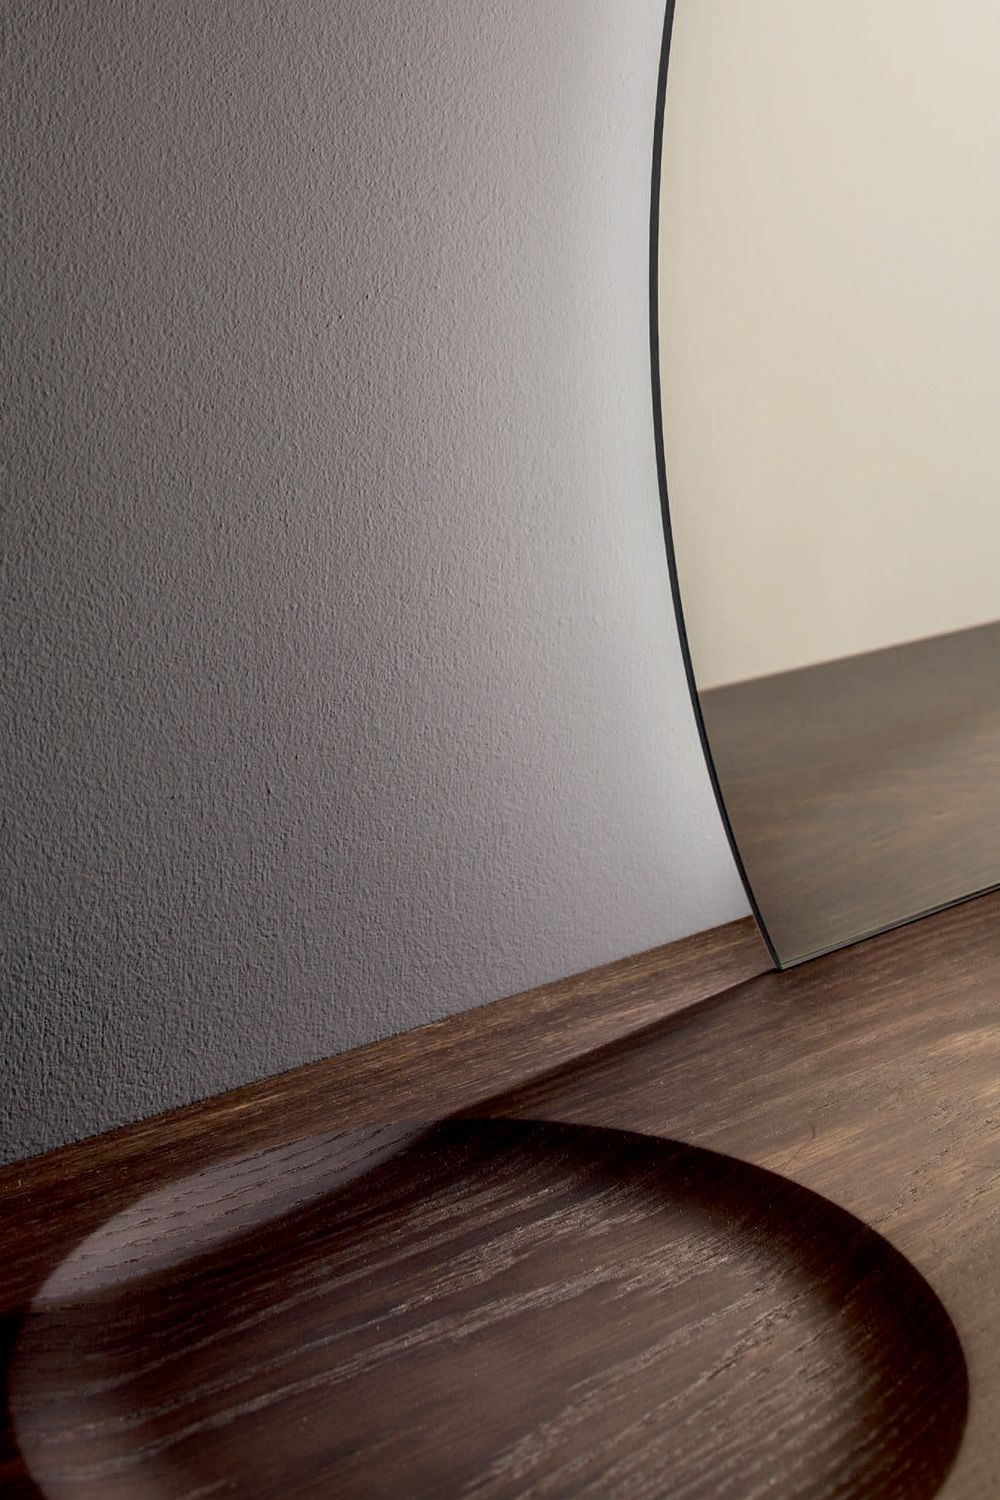 Mirror with wooden shelf, detail